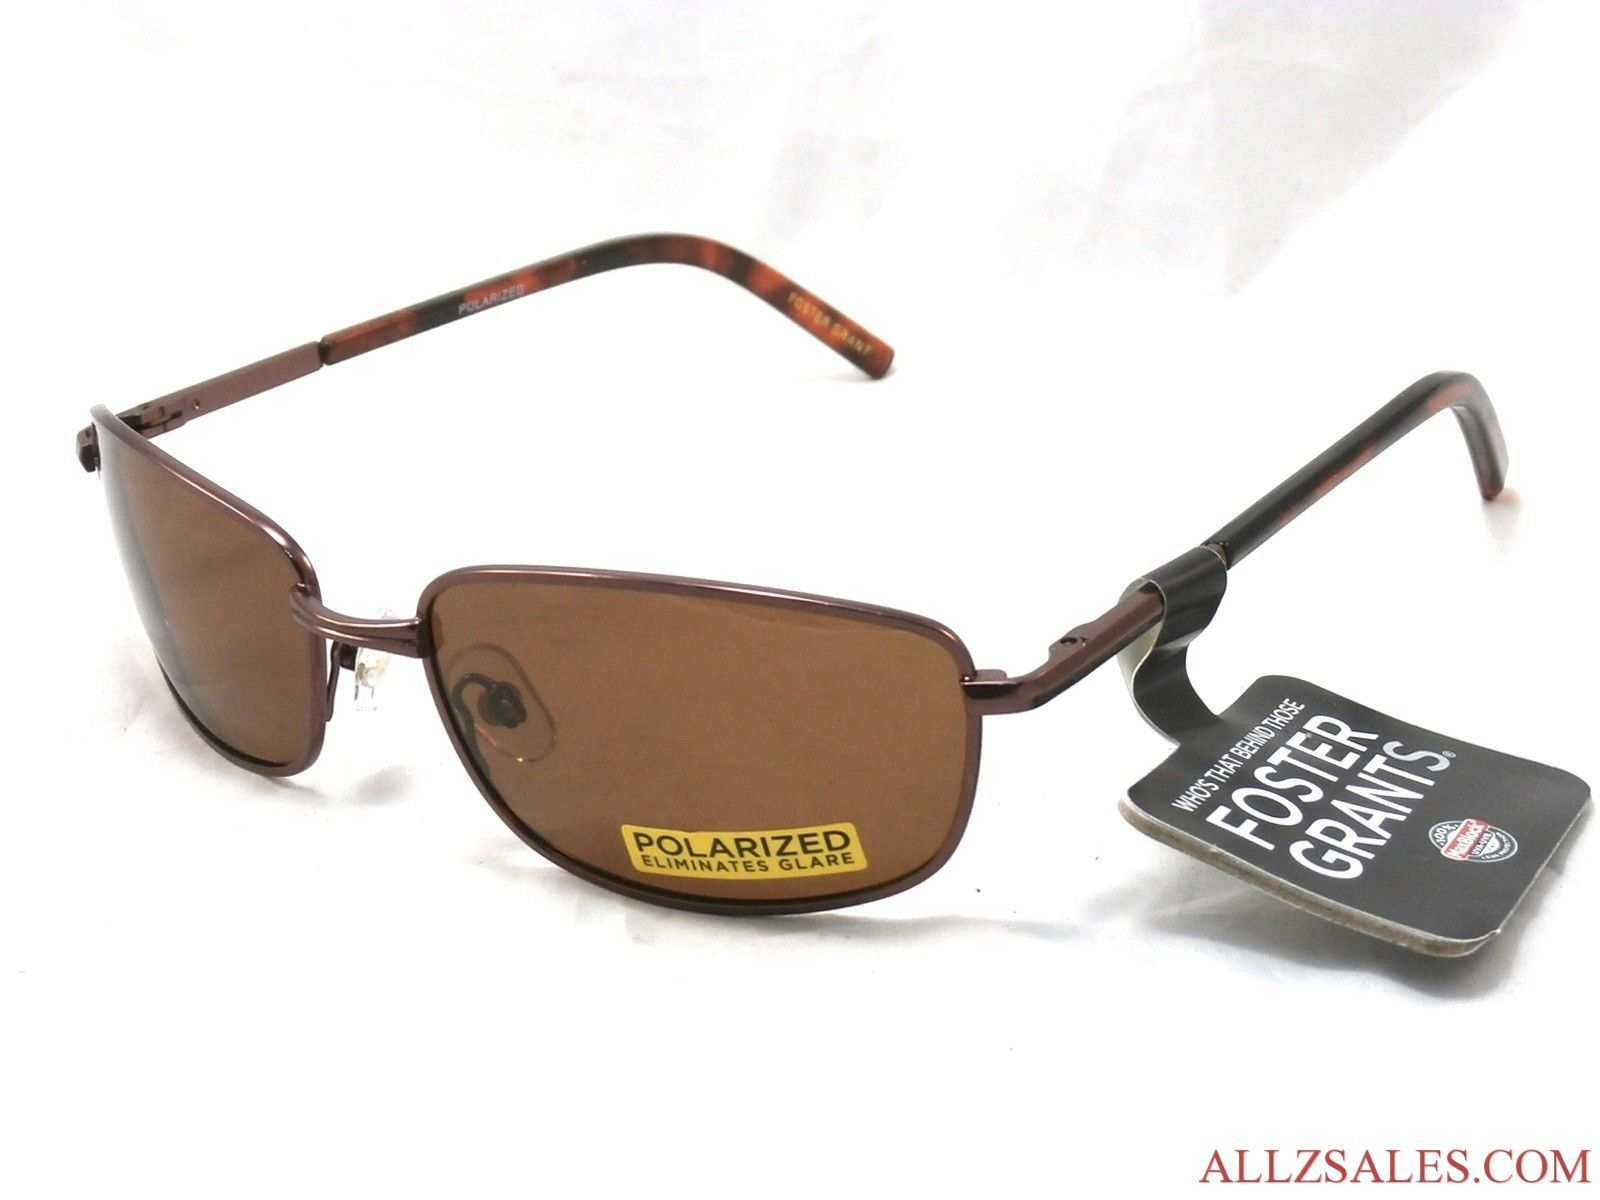 Primary image for Foster Grant VIRGINIA Unisex Polarized Metal Sunglasses New with Tag  #B5-30